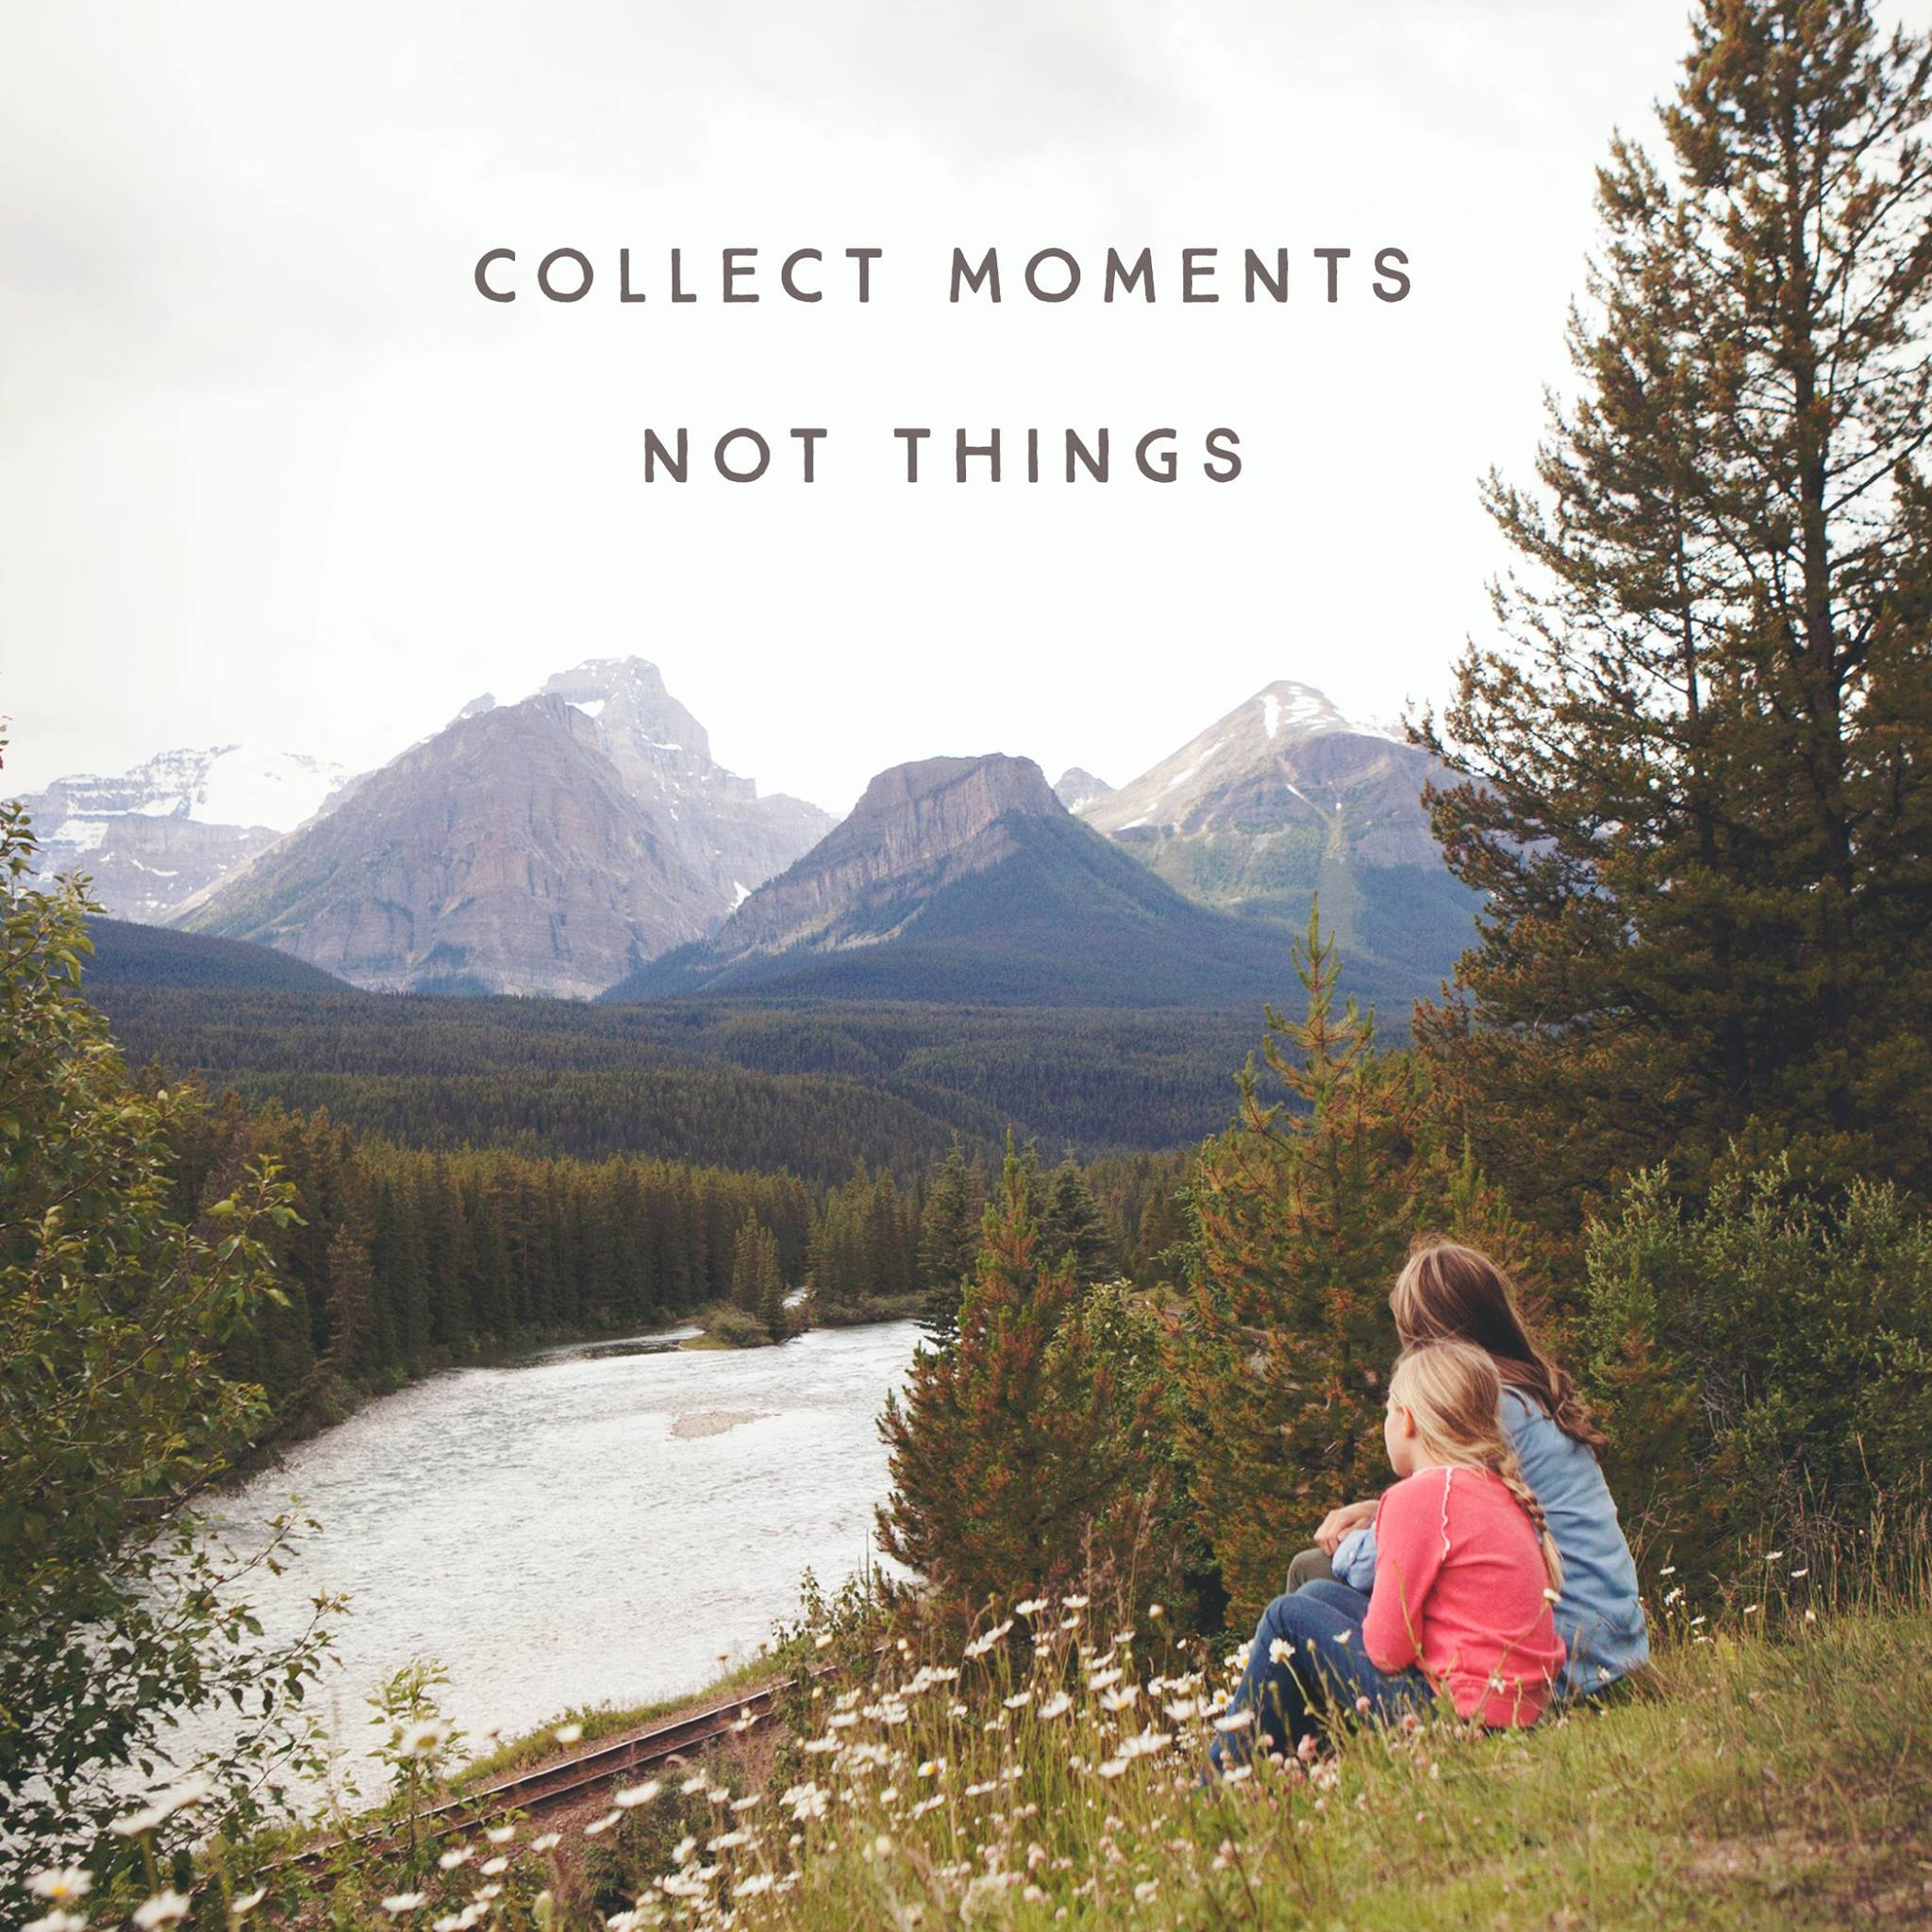 12 Quotes to Inspire your Photography Journey // Collect moments, not things. – unknown